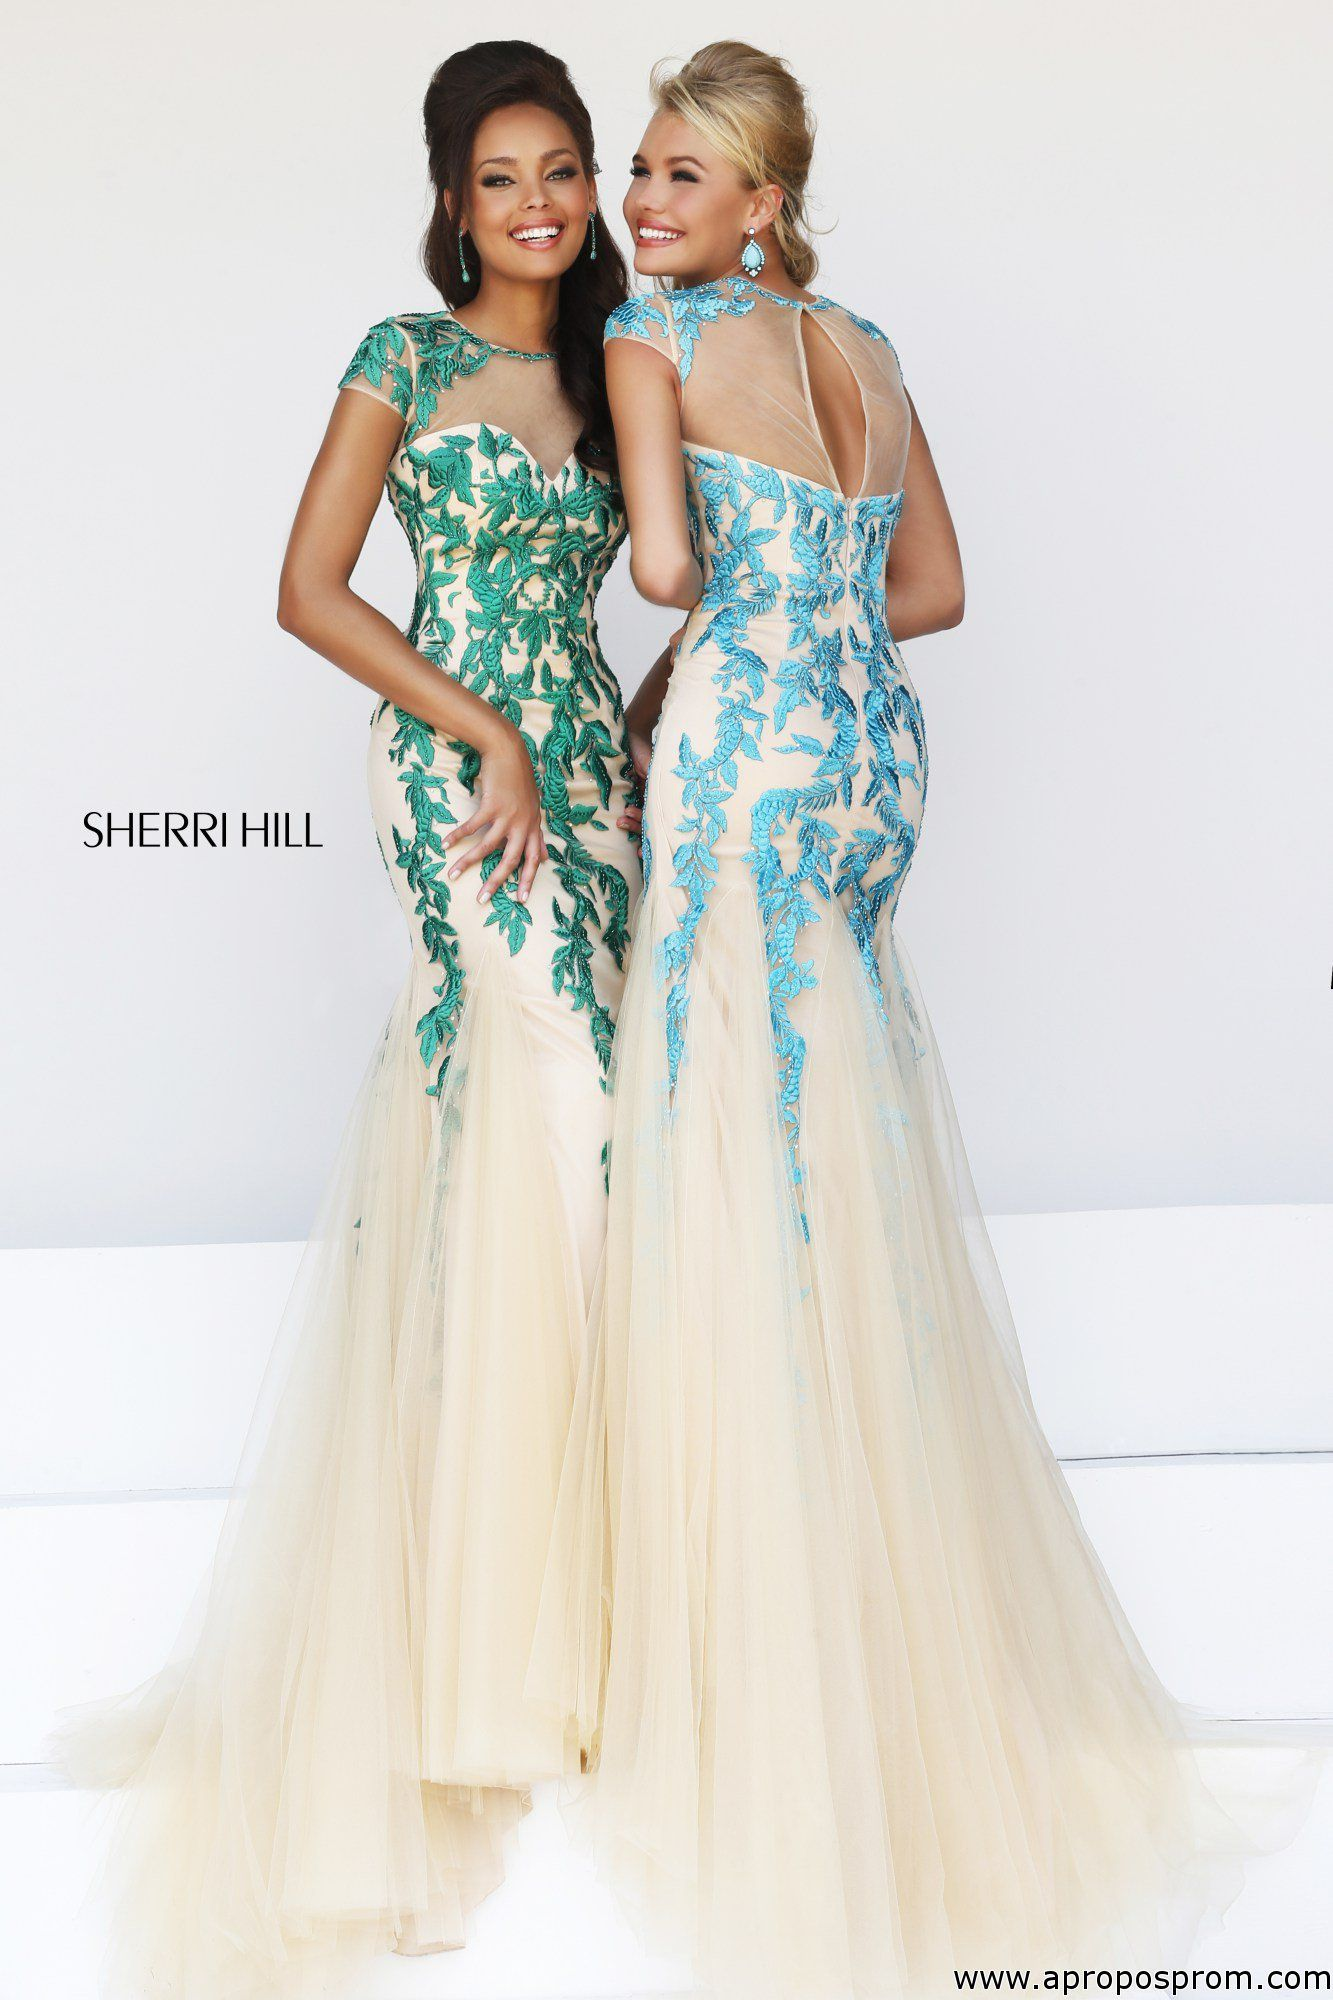 Shop for Sherri Hill designer prom dresses and evening gowns at Simply  Dresses. Red carpet designer dresses for prom, homecoming, and pageants.